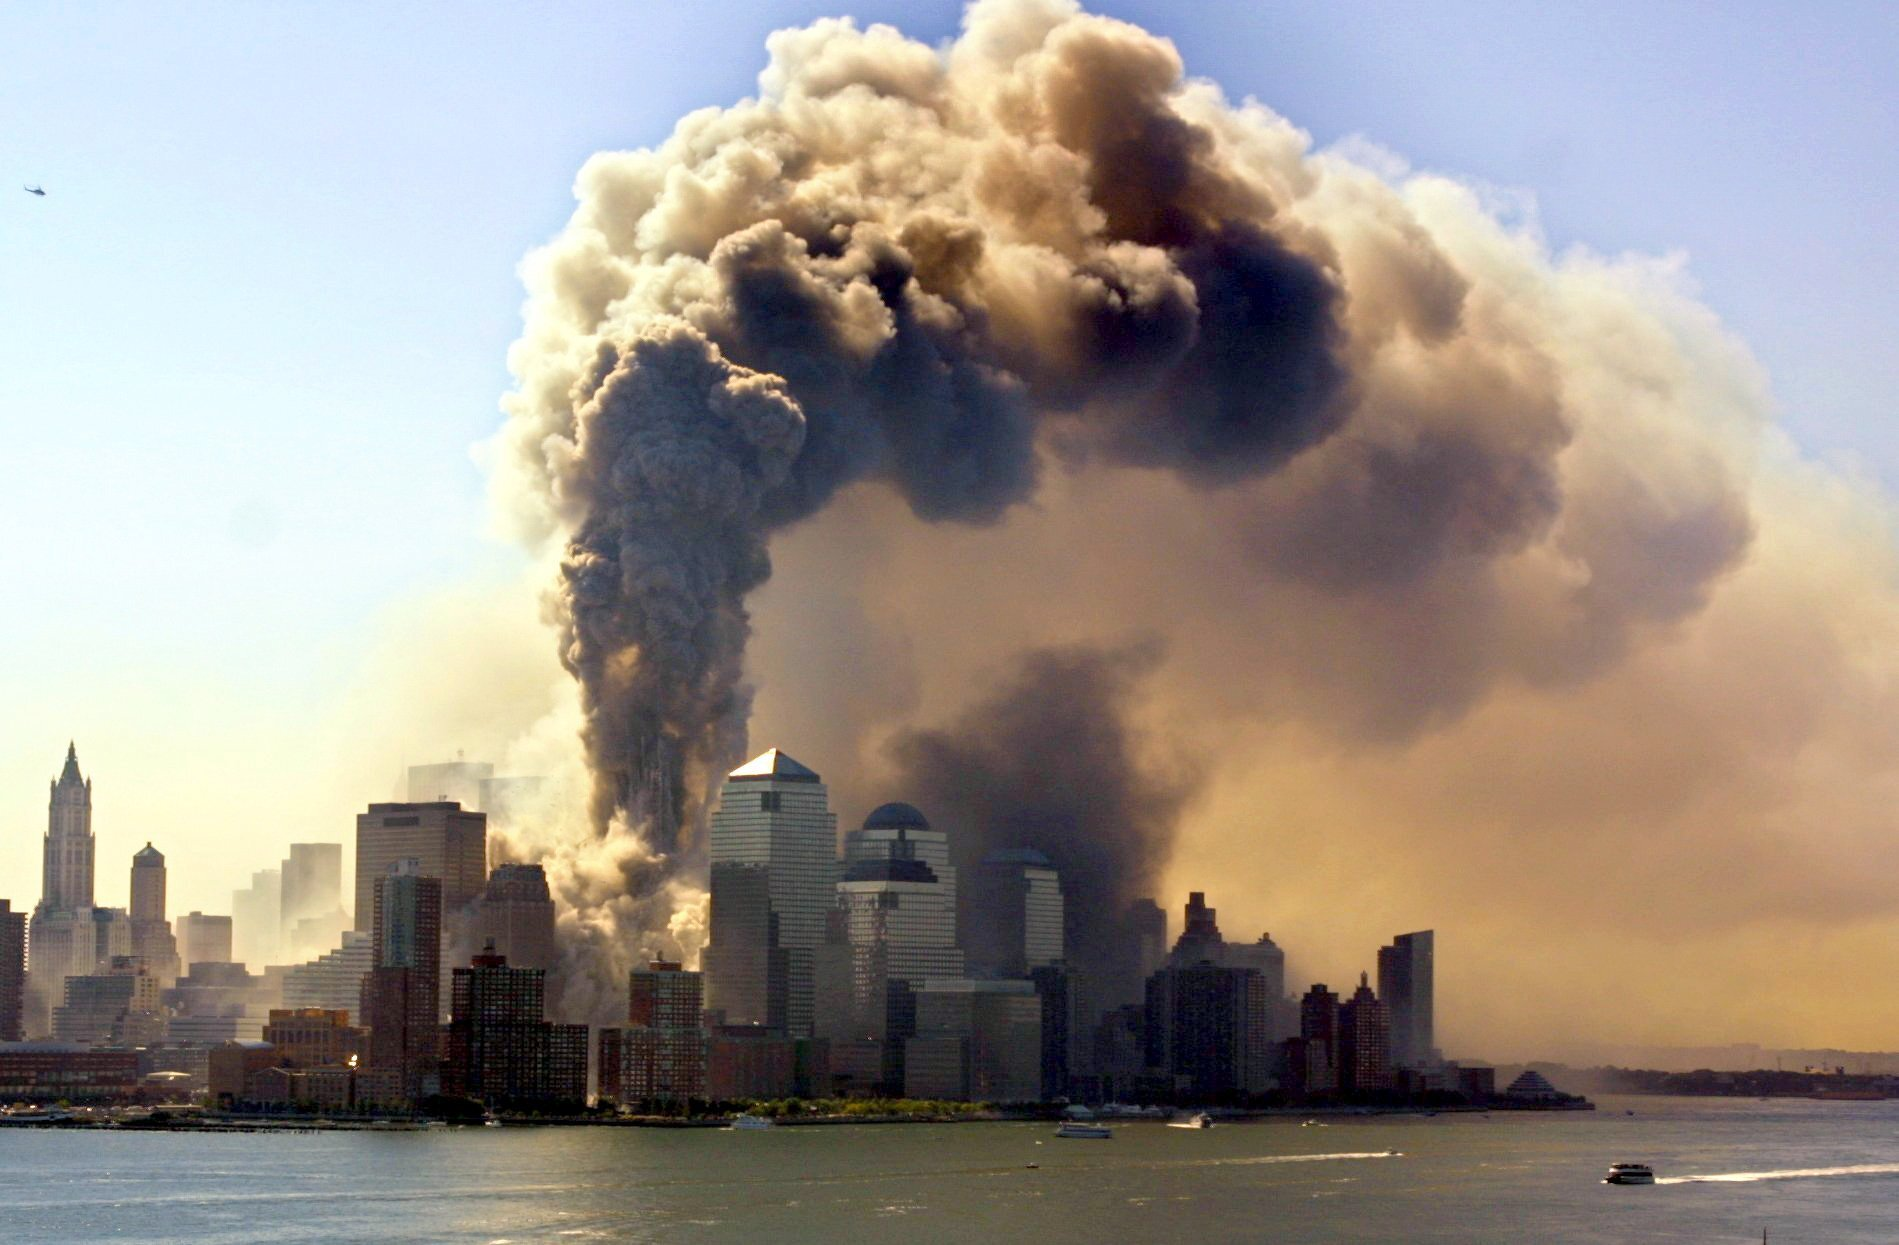 Both towers of the burning World Trade Center in New York collapse after the attack on September 11, 2001